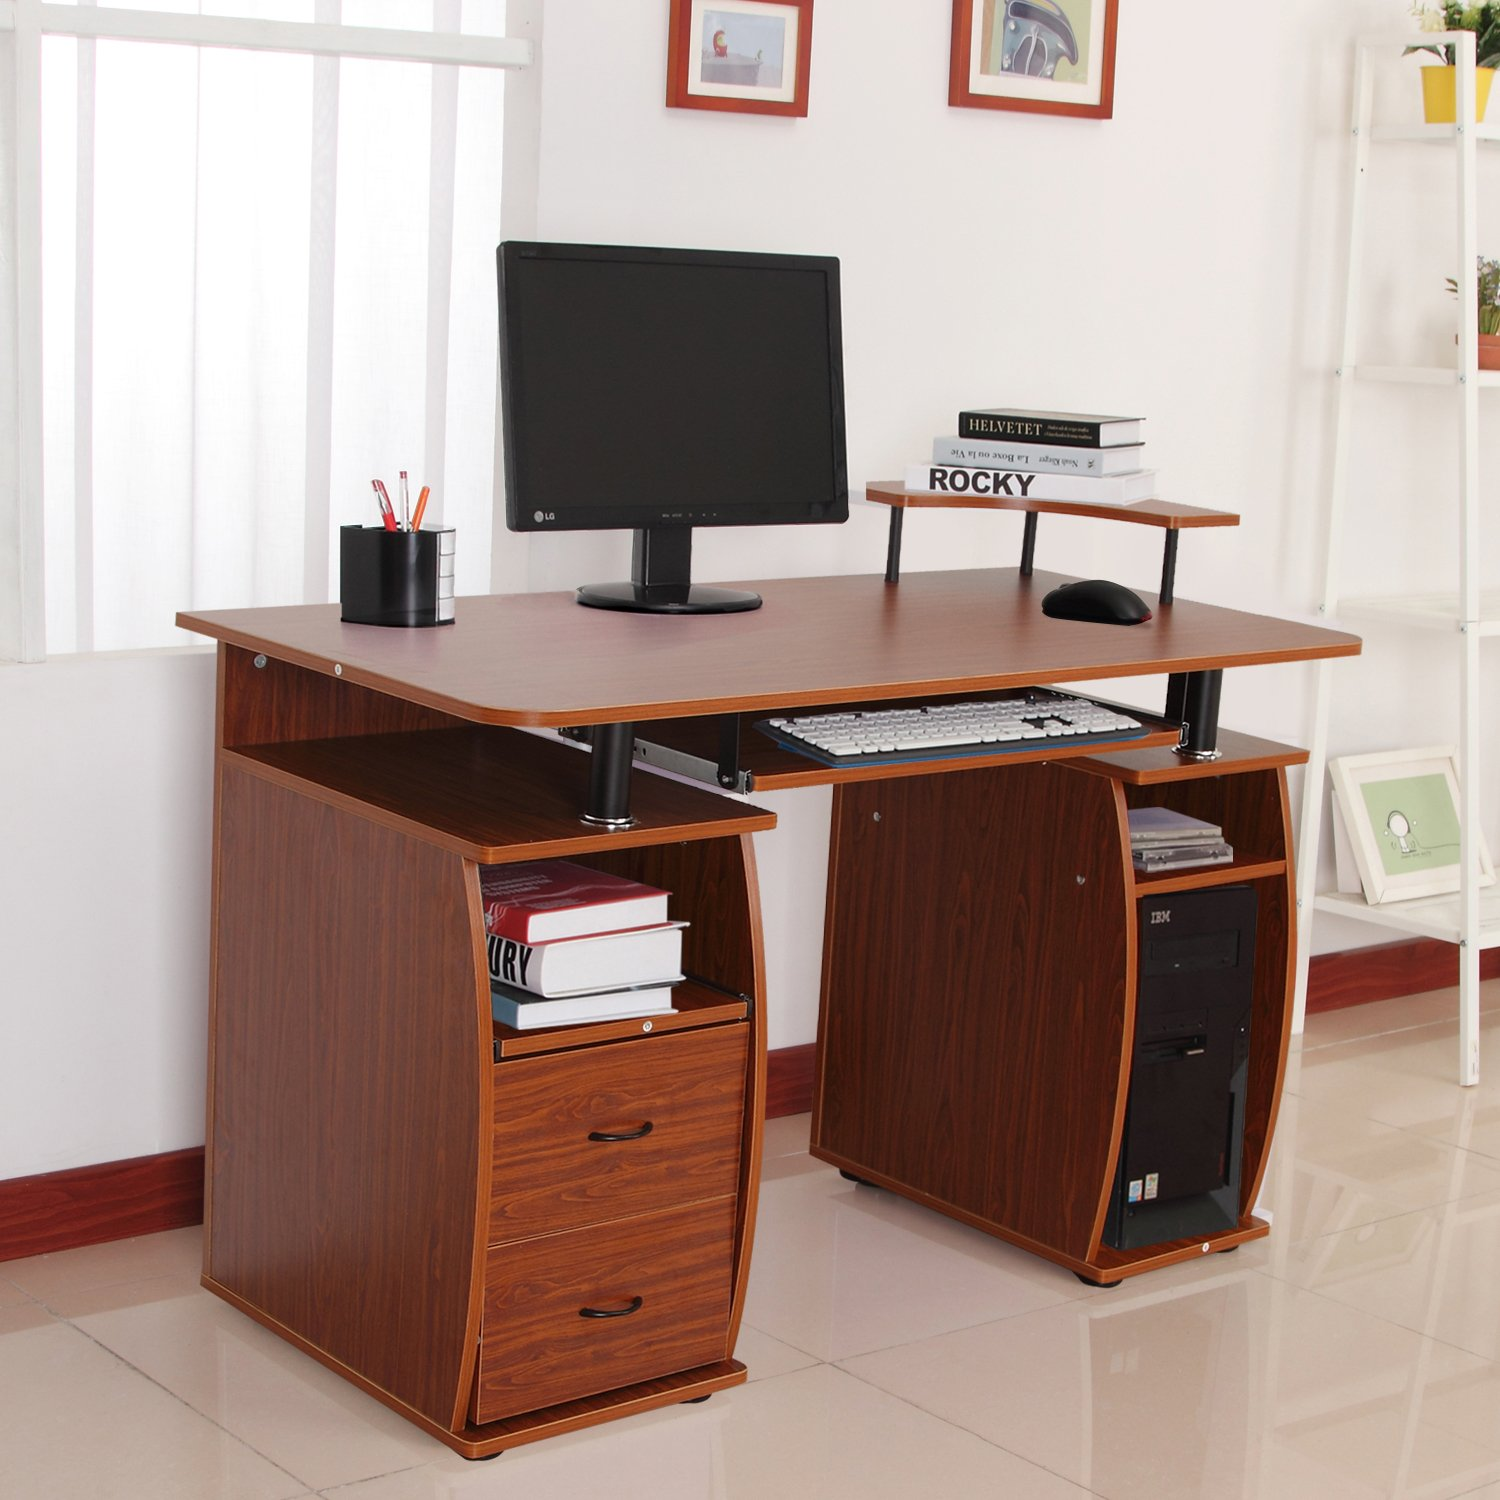 Computer Desk Home Homcom Wooden Office Computer Pc Table Writing Desk Home Furniture